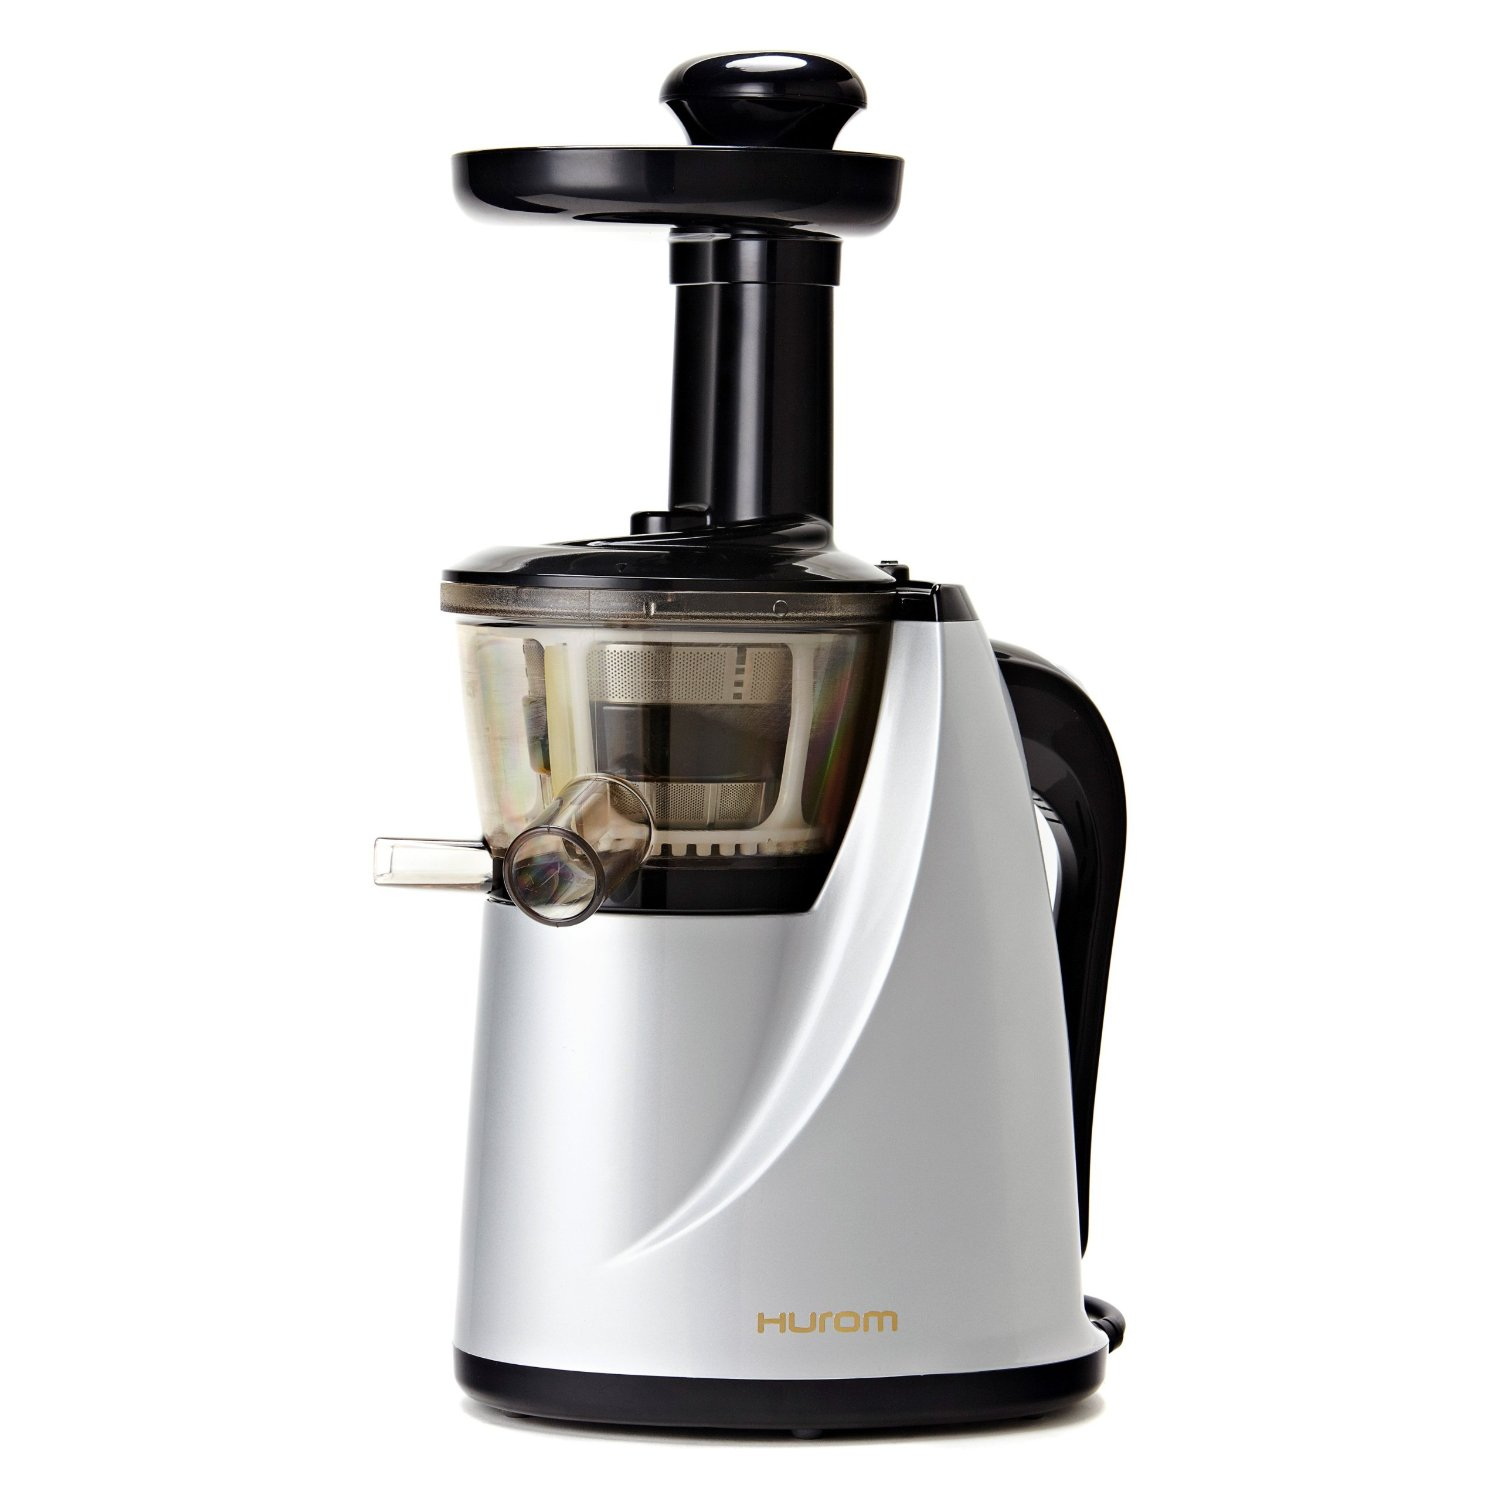 Is A Slow Juicer Better : Hurom HU-100 Masticating Slow Juicer Review - Best Cold ...